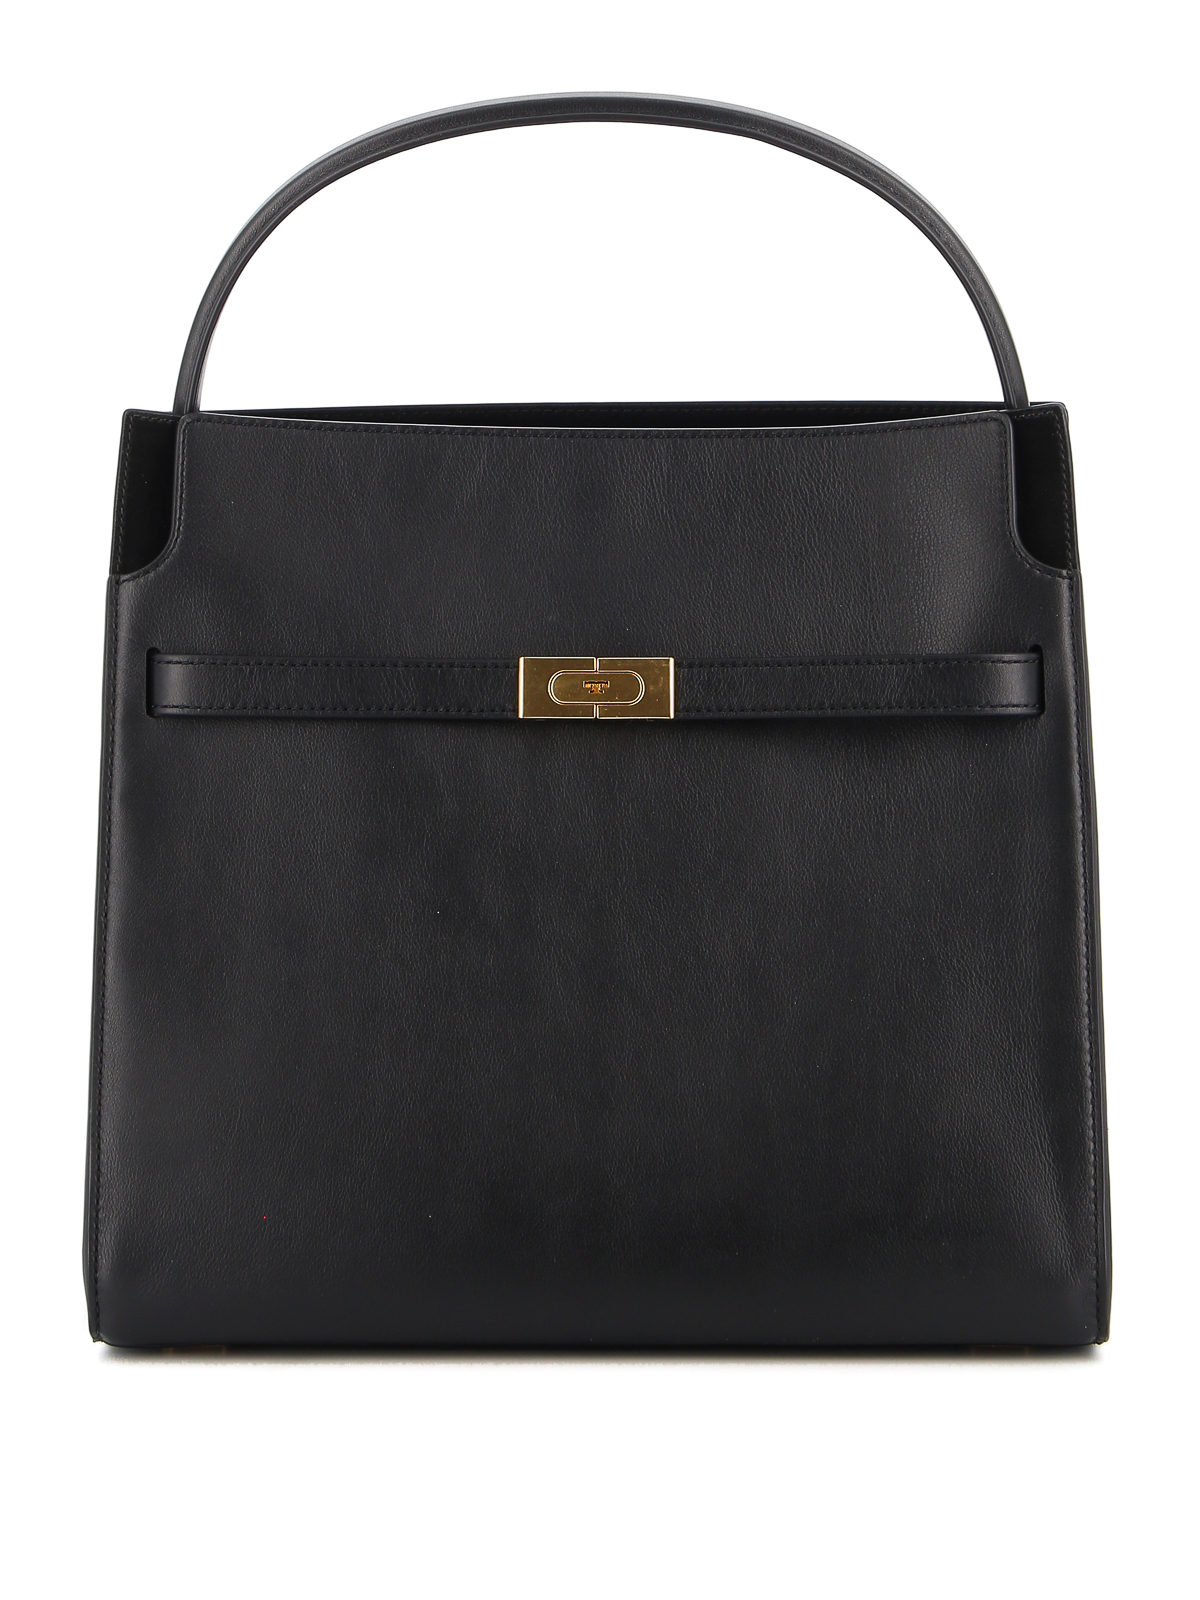 Tory Burch DOUBLE LEE RADZIWILL SHOULDER BAG